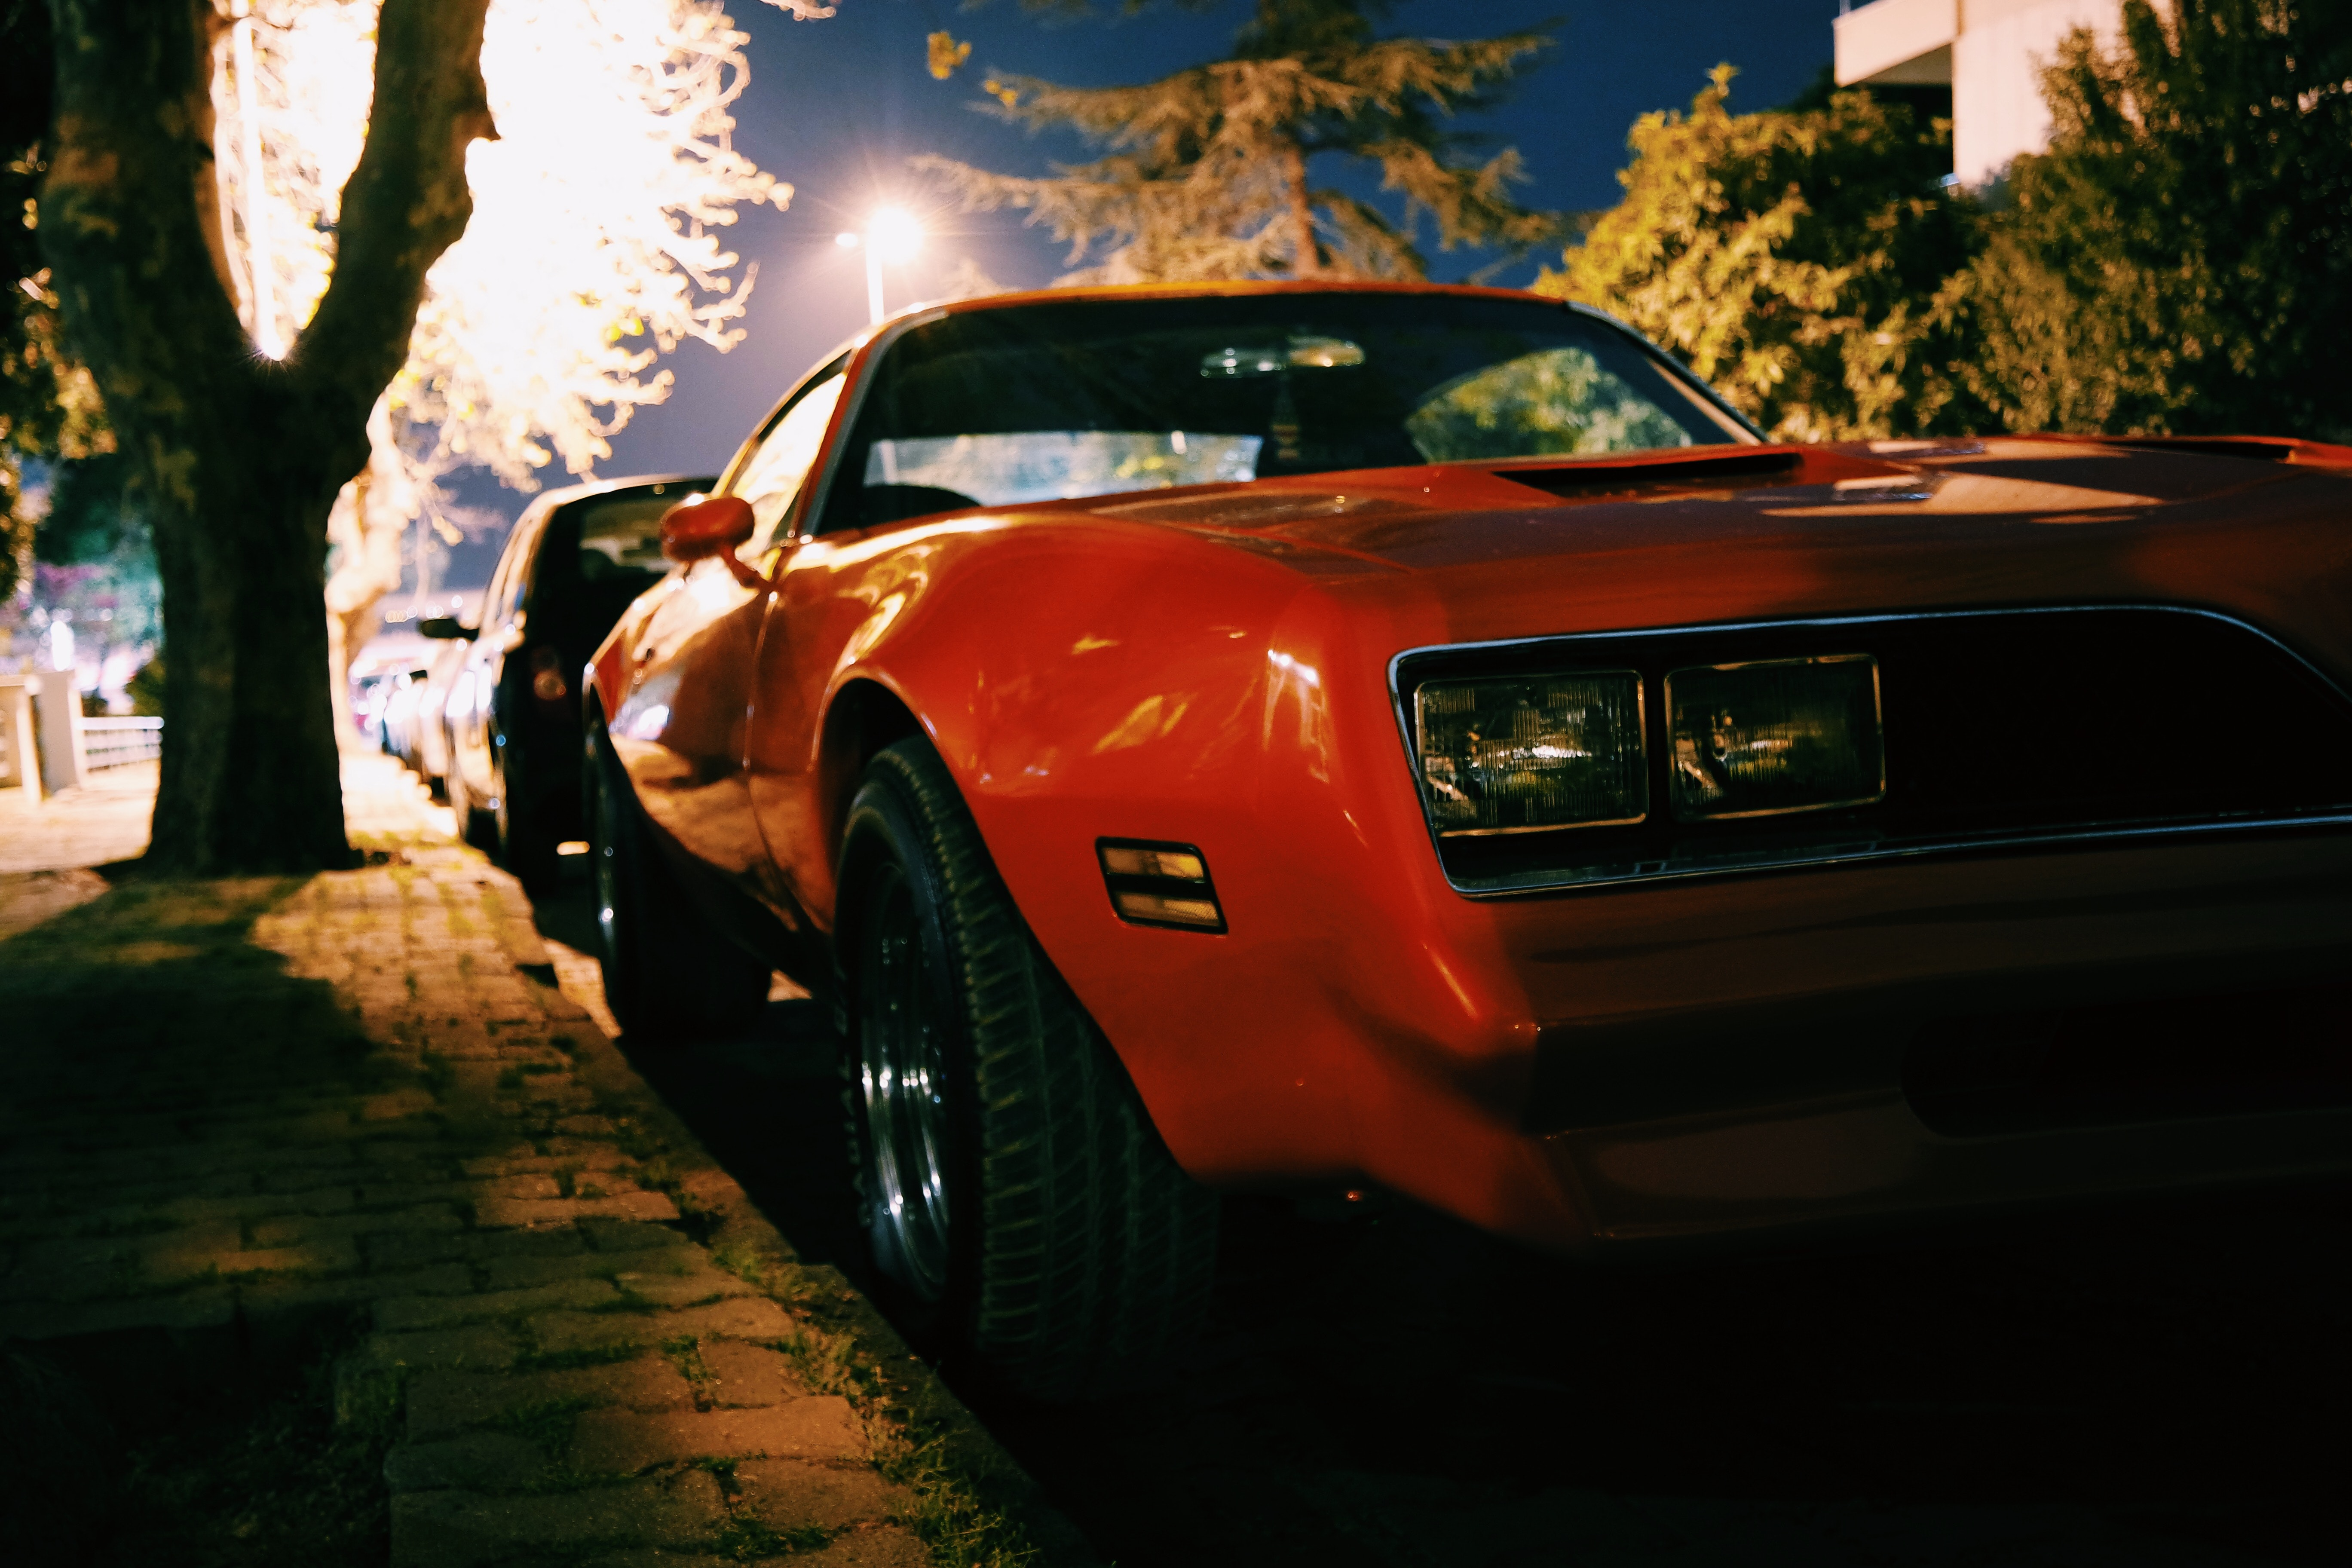 Red Classic Muscle Car, Cars, Muscle car, Night, Night time, HQ Photo